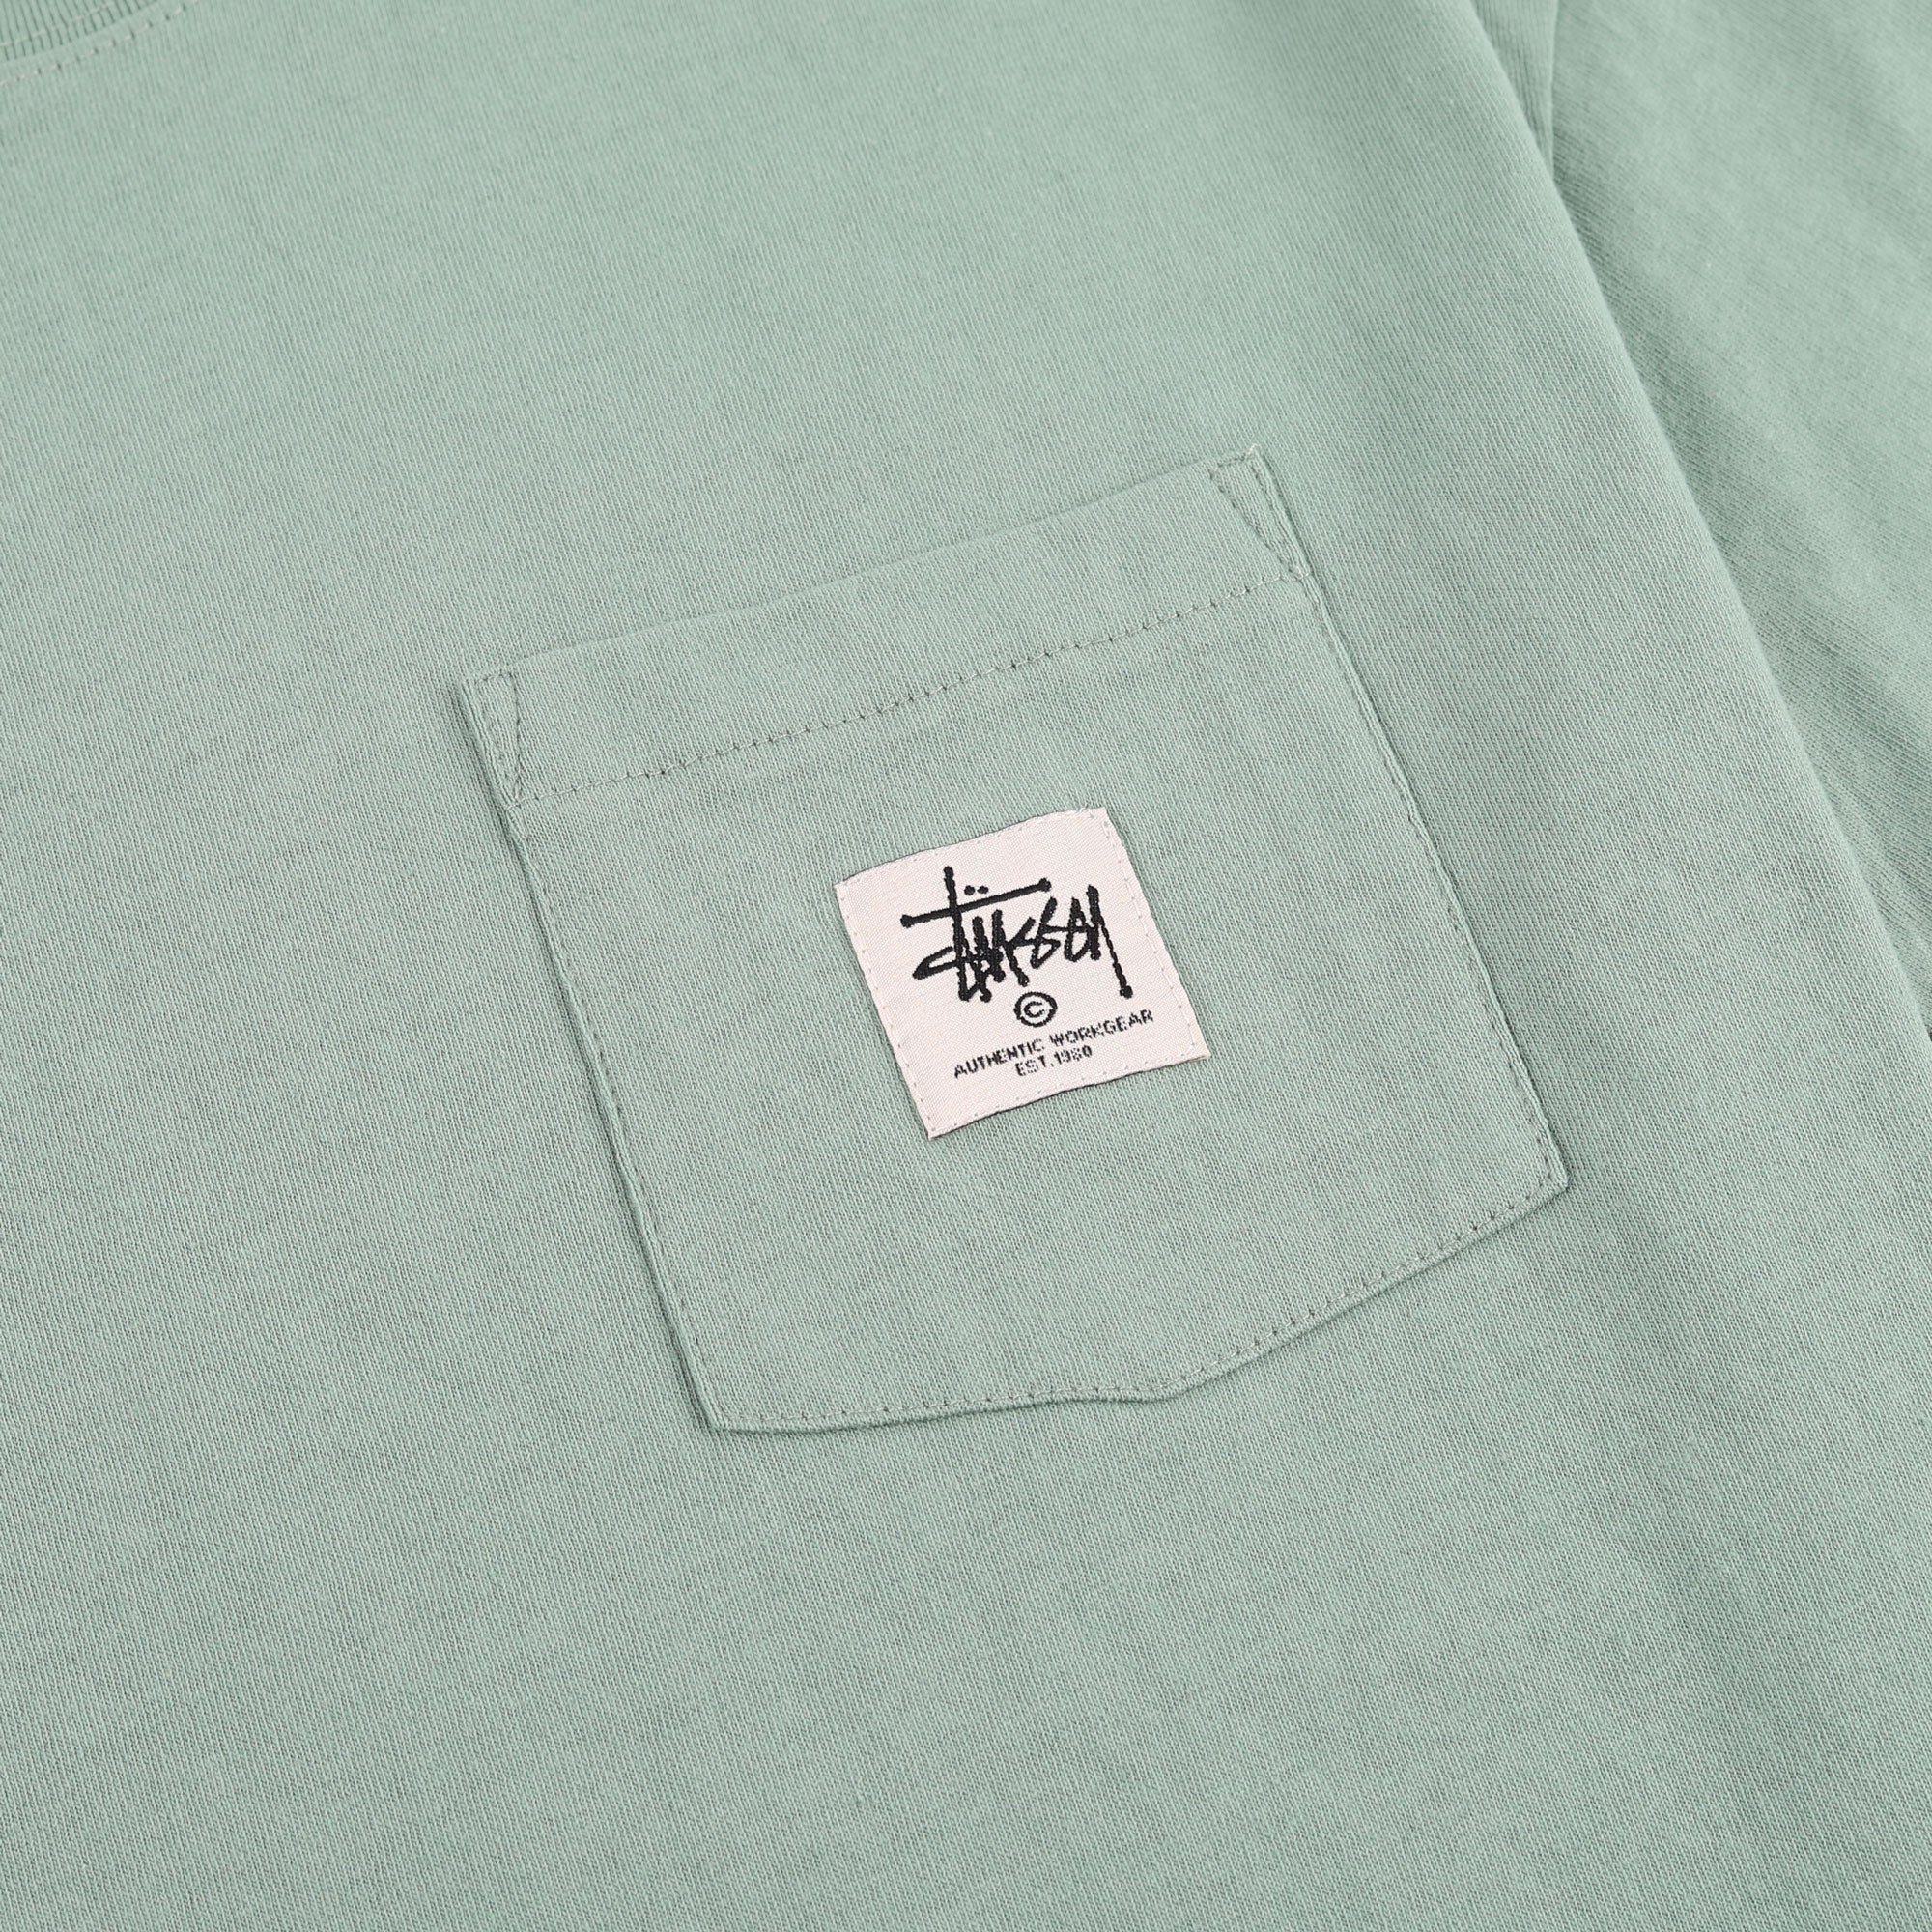 Stussy Work Label Pocket Tee Product Photo #2